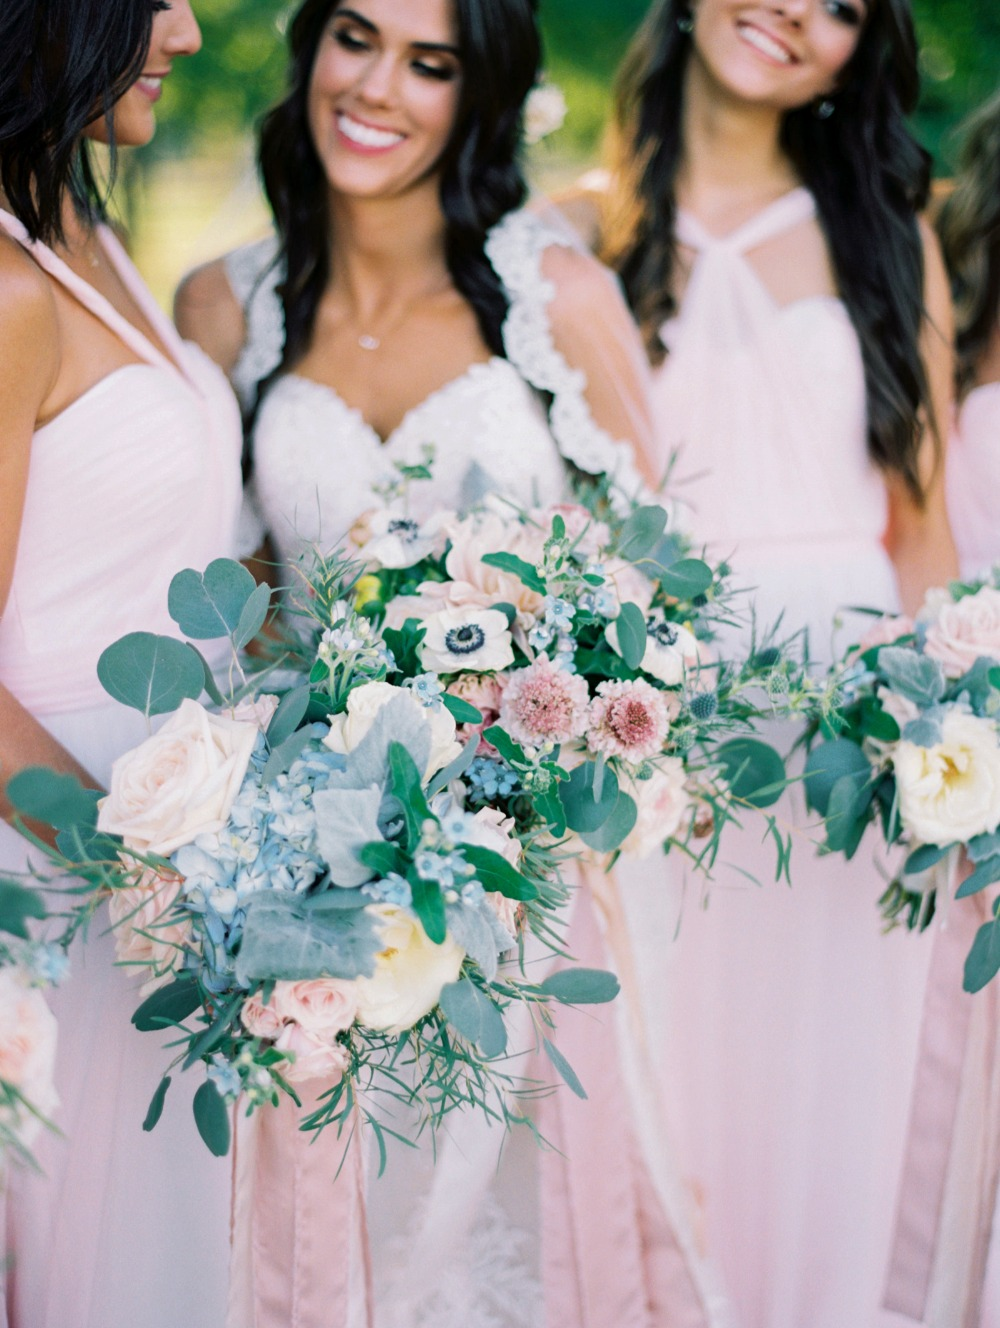 Wedding bouquets for the bride and bridesmaids